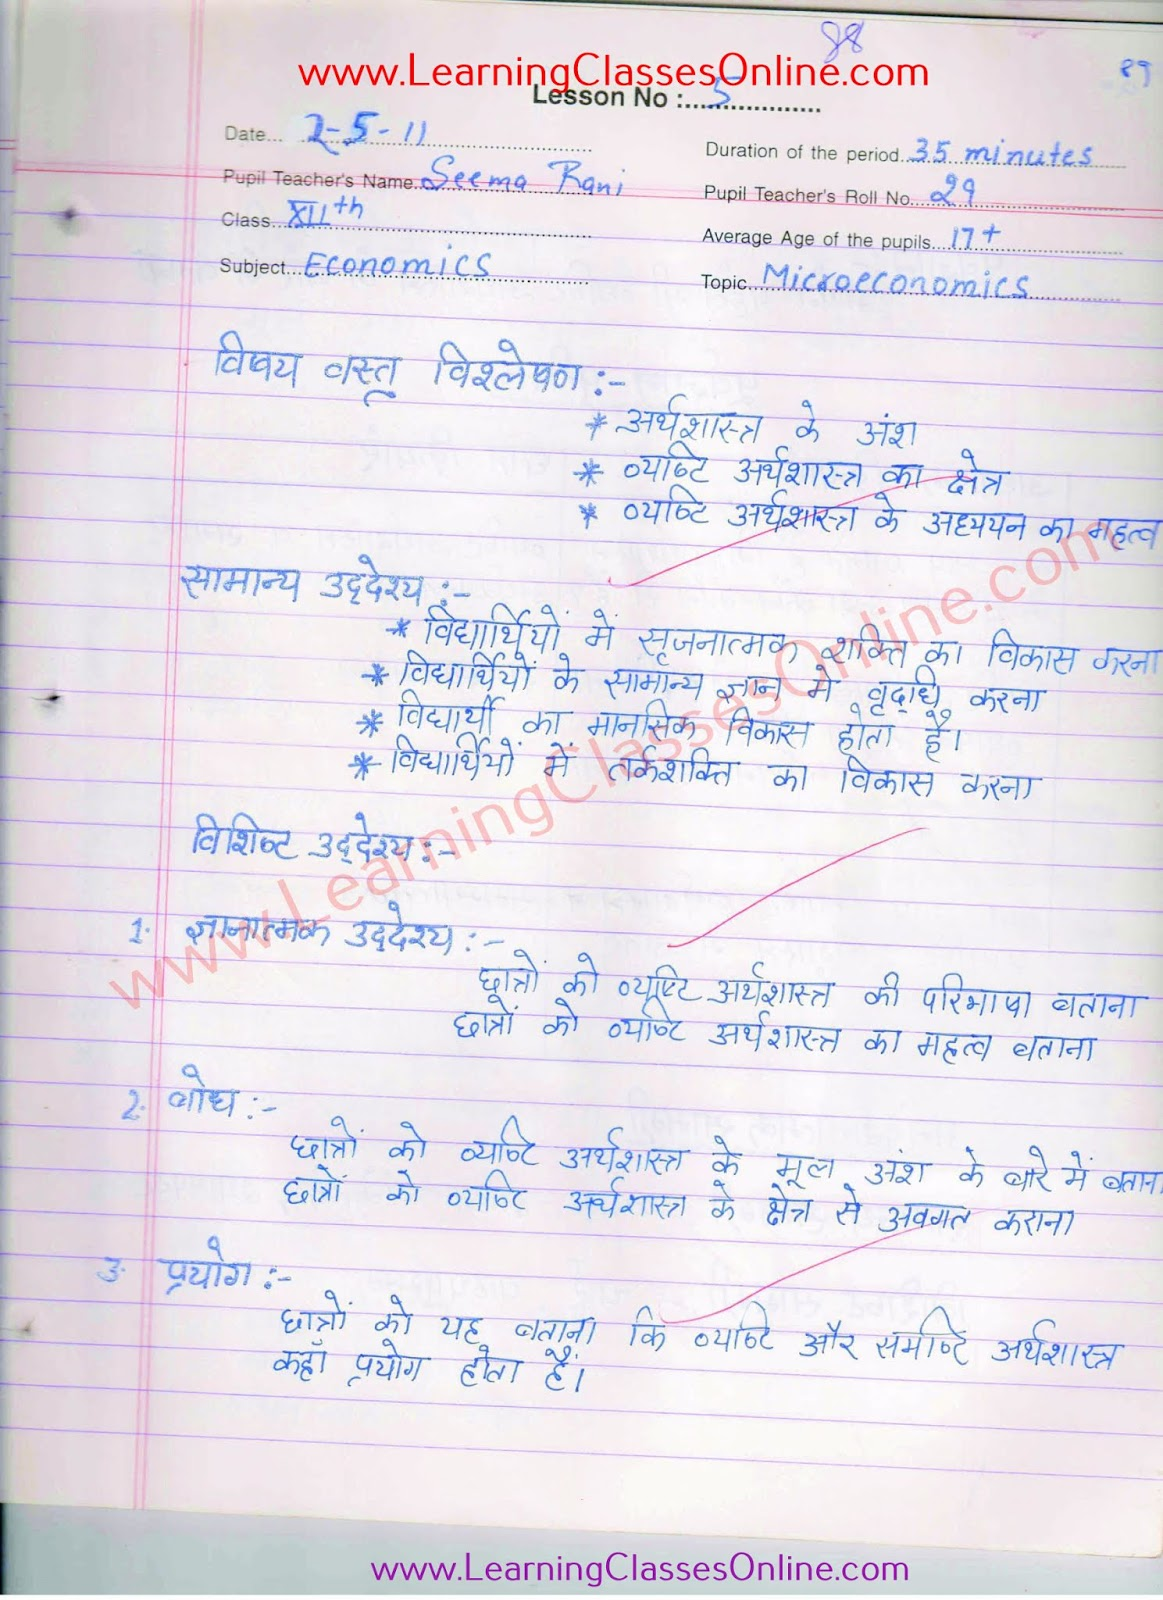 Microeconomics Lesson Plan in Hindi for Class 11 students and teachers free download pdf